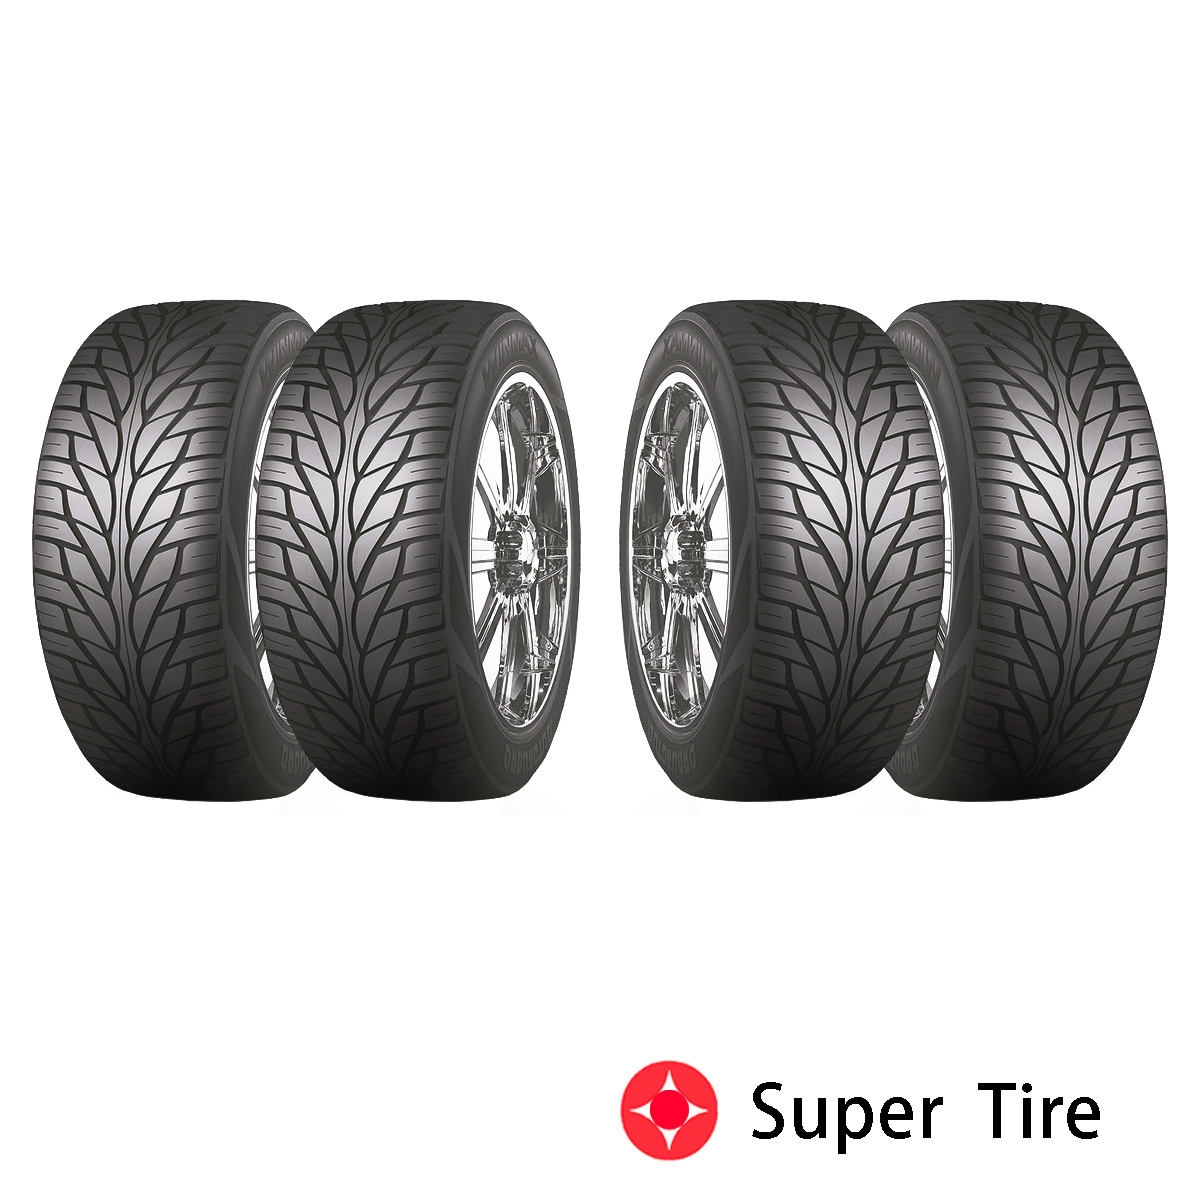 how to choose tire brand